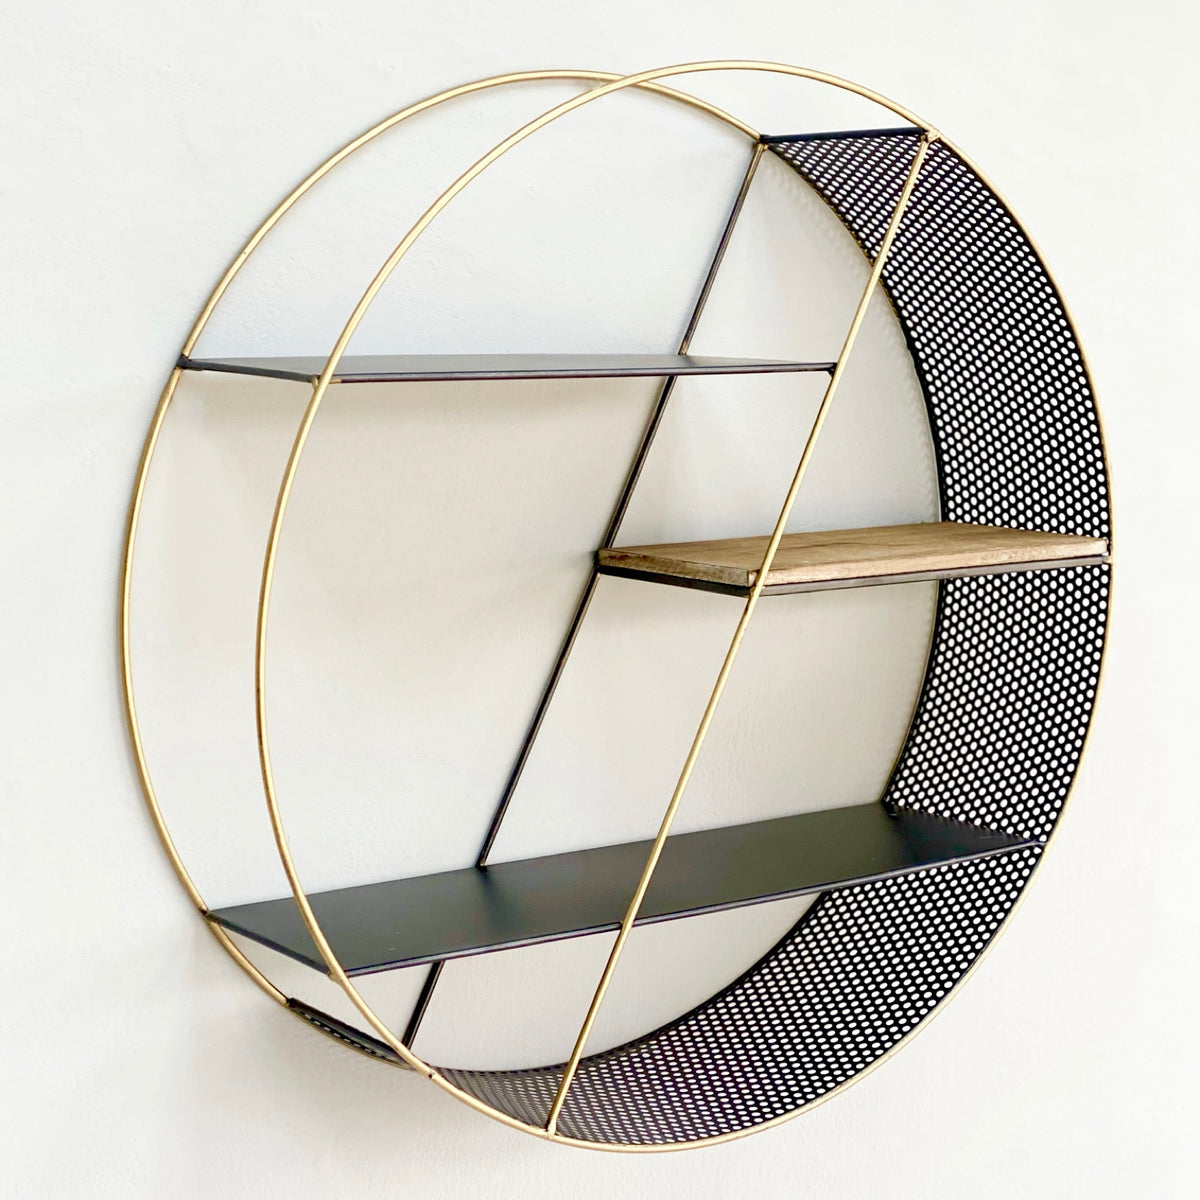 Perforated Round Wall Shelf